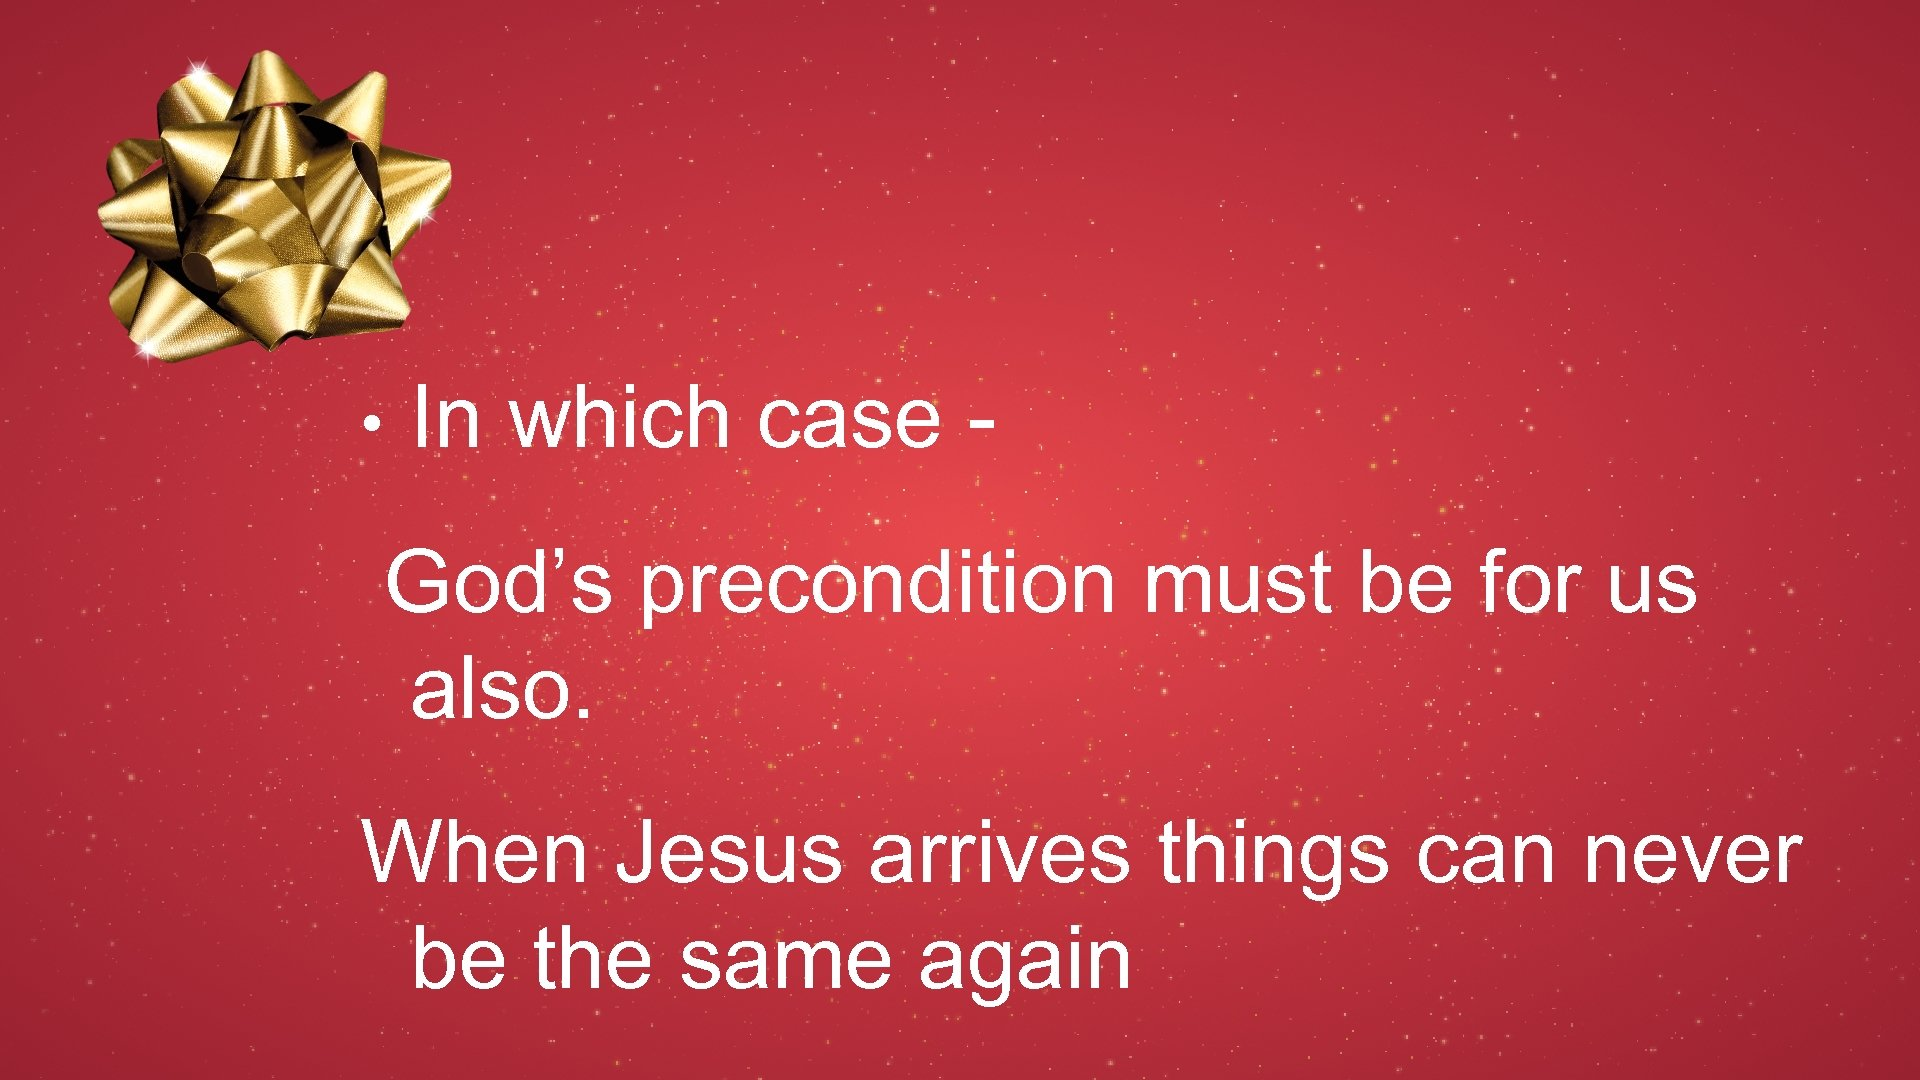 • In which case God's precondition must be for us also. When Jesus